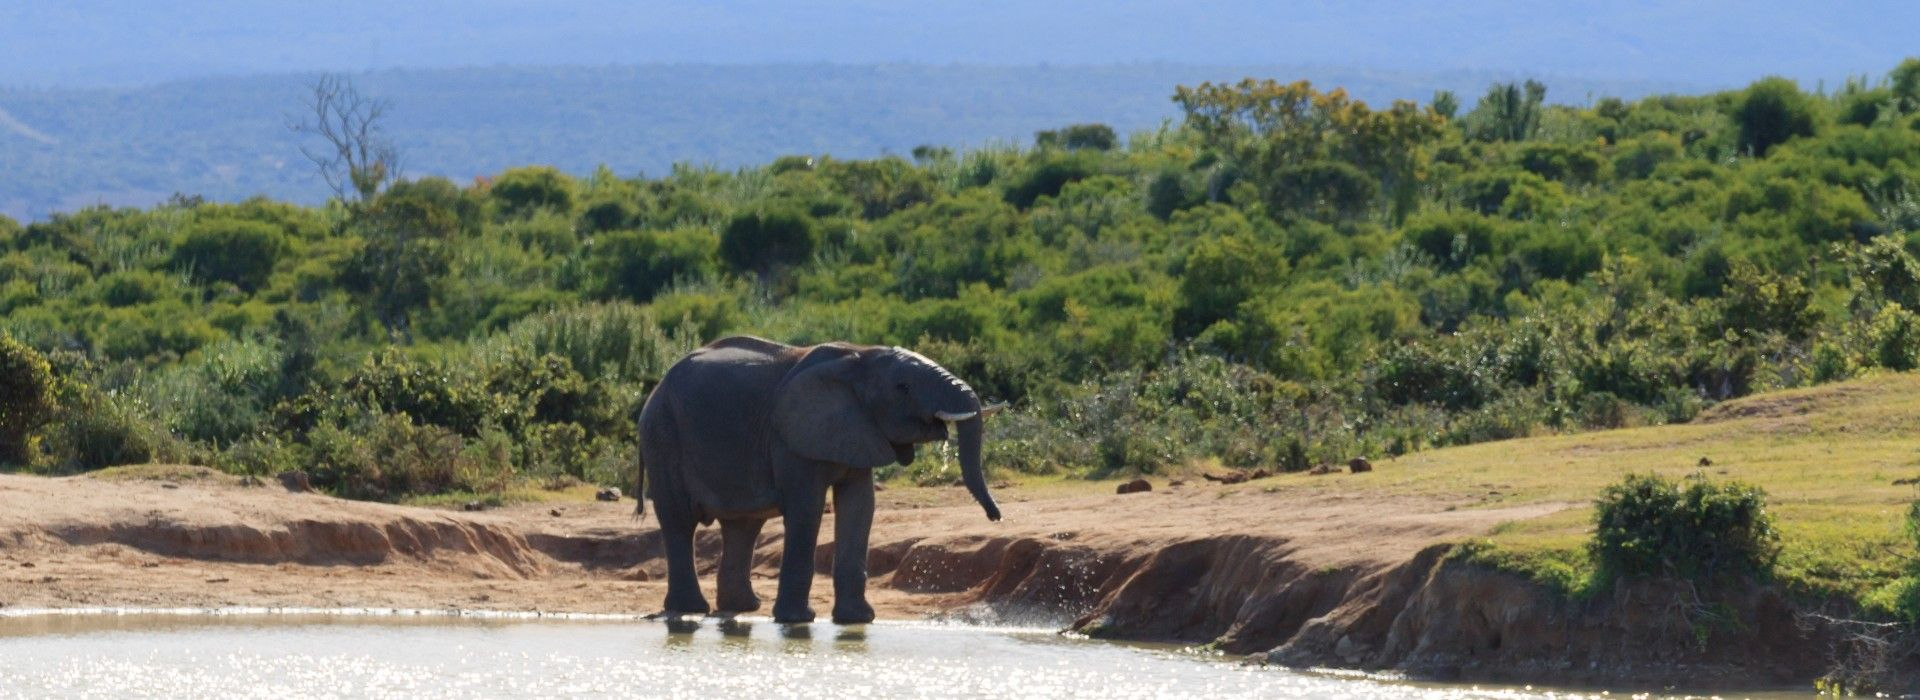 Addo Elephant National Park Tours